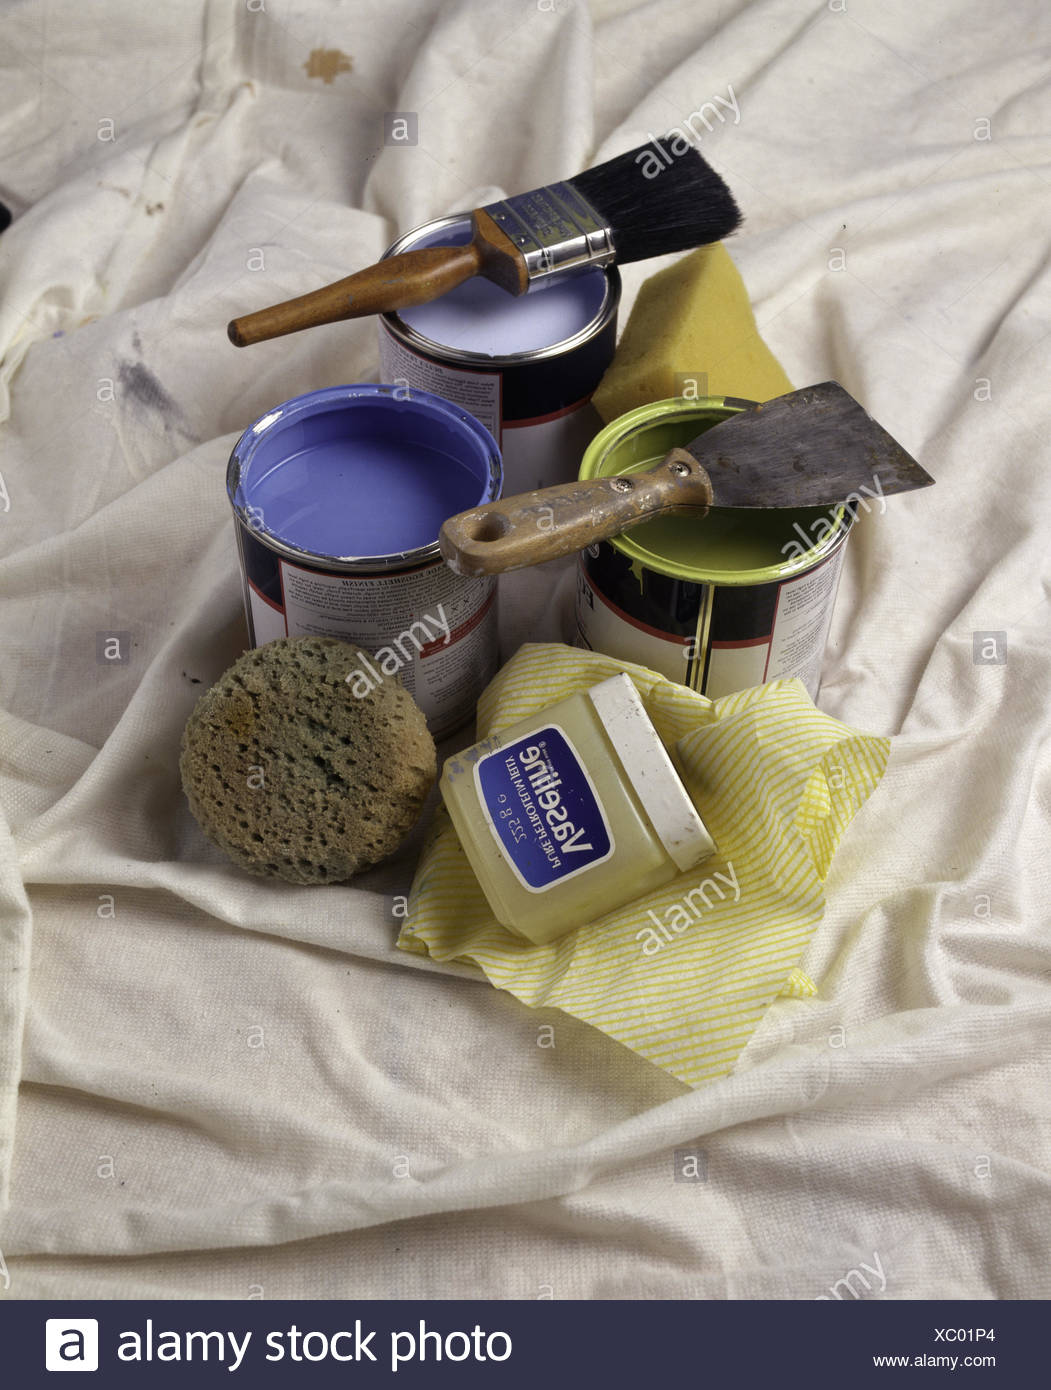 Tins of blue and green paint sith paint brushes - Stock Image